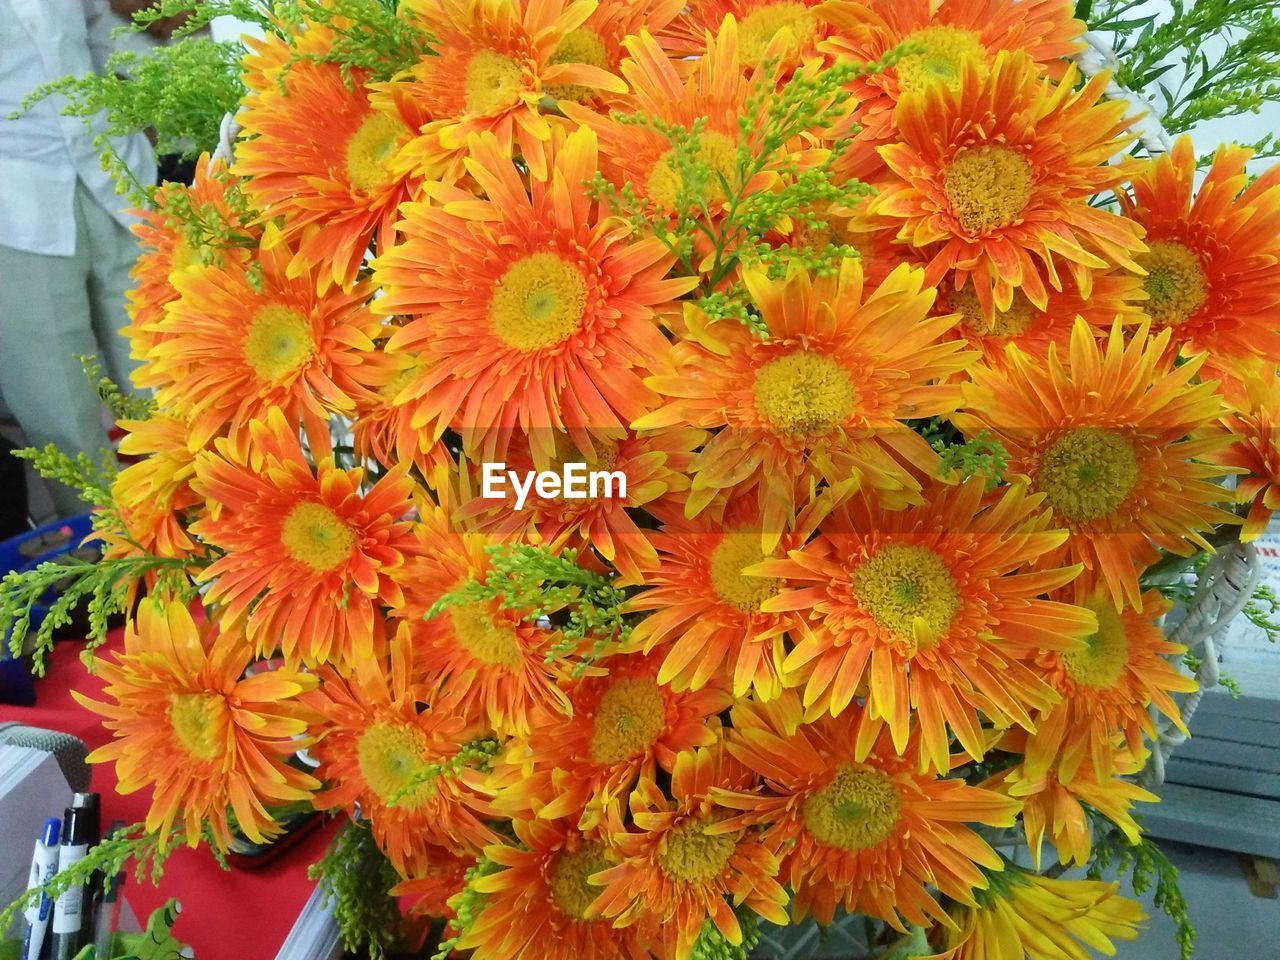 flower, flowering plant, plant, vulnerability, freshness, fragility, flower head, inflorescence, petal, beauty in nature, close-up, orange color, nature, day, growth, yellow, multi colored, for sale, daisy, no people, outdoors, flower arrangement, pollen, flower market, bunch of flowers, bouquet